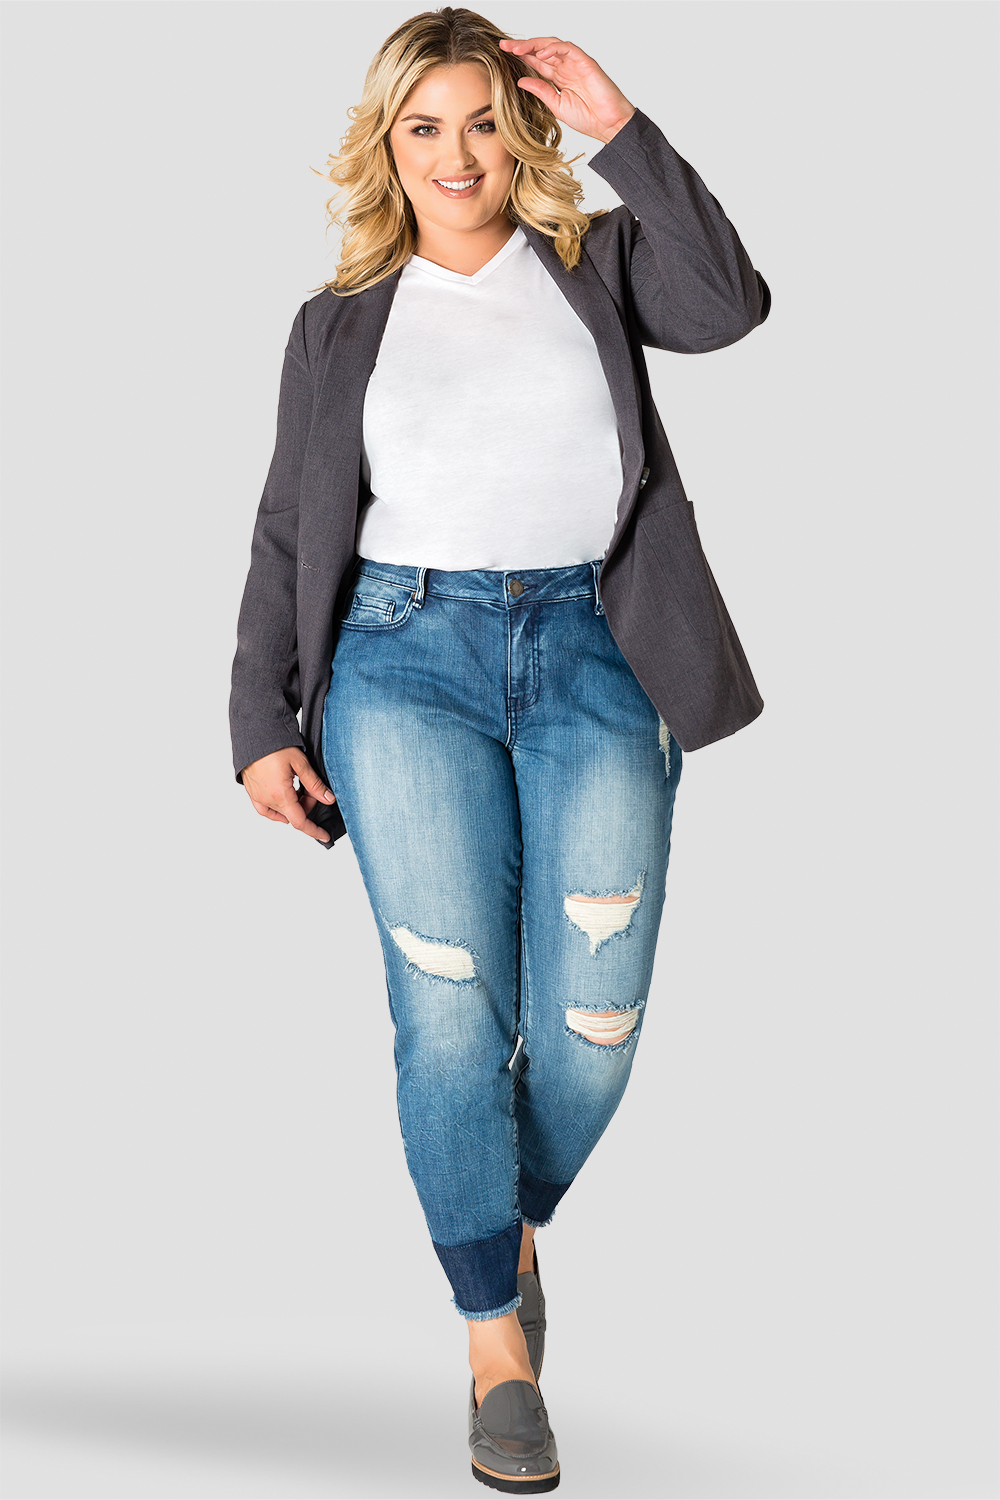 Plus Size Standards & Practices Plaid Gray Boyfriend Blazer